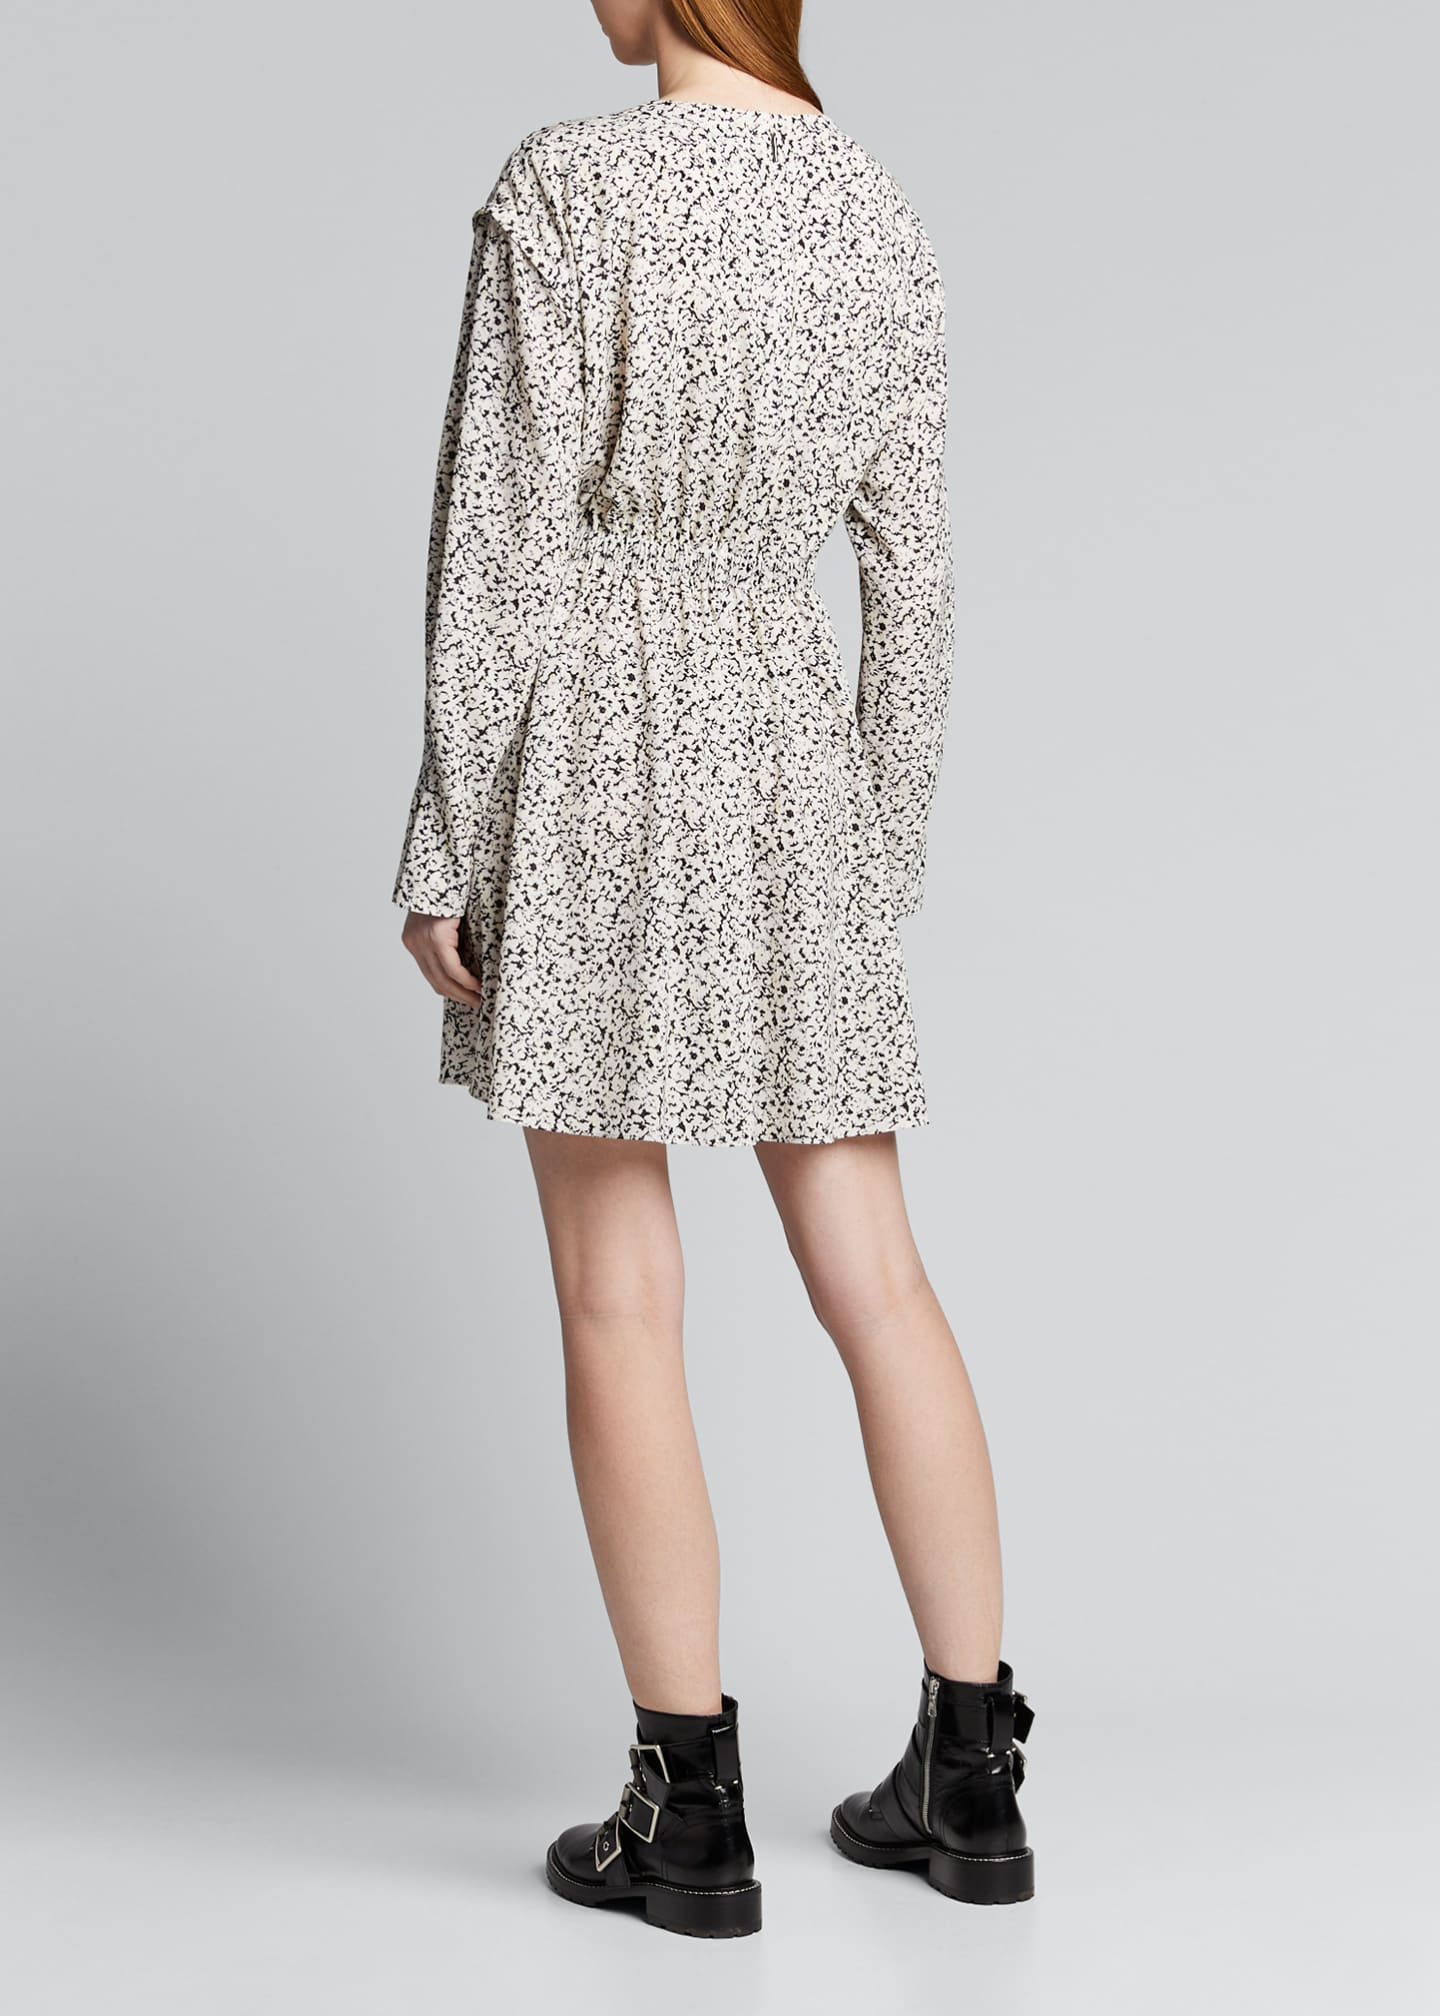 Image 2 of 5: Inverse Floral Long-Sleeve Mini Dress